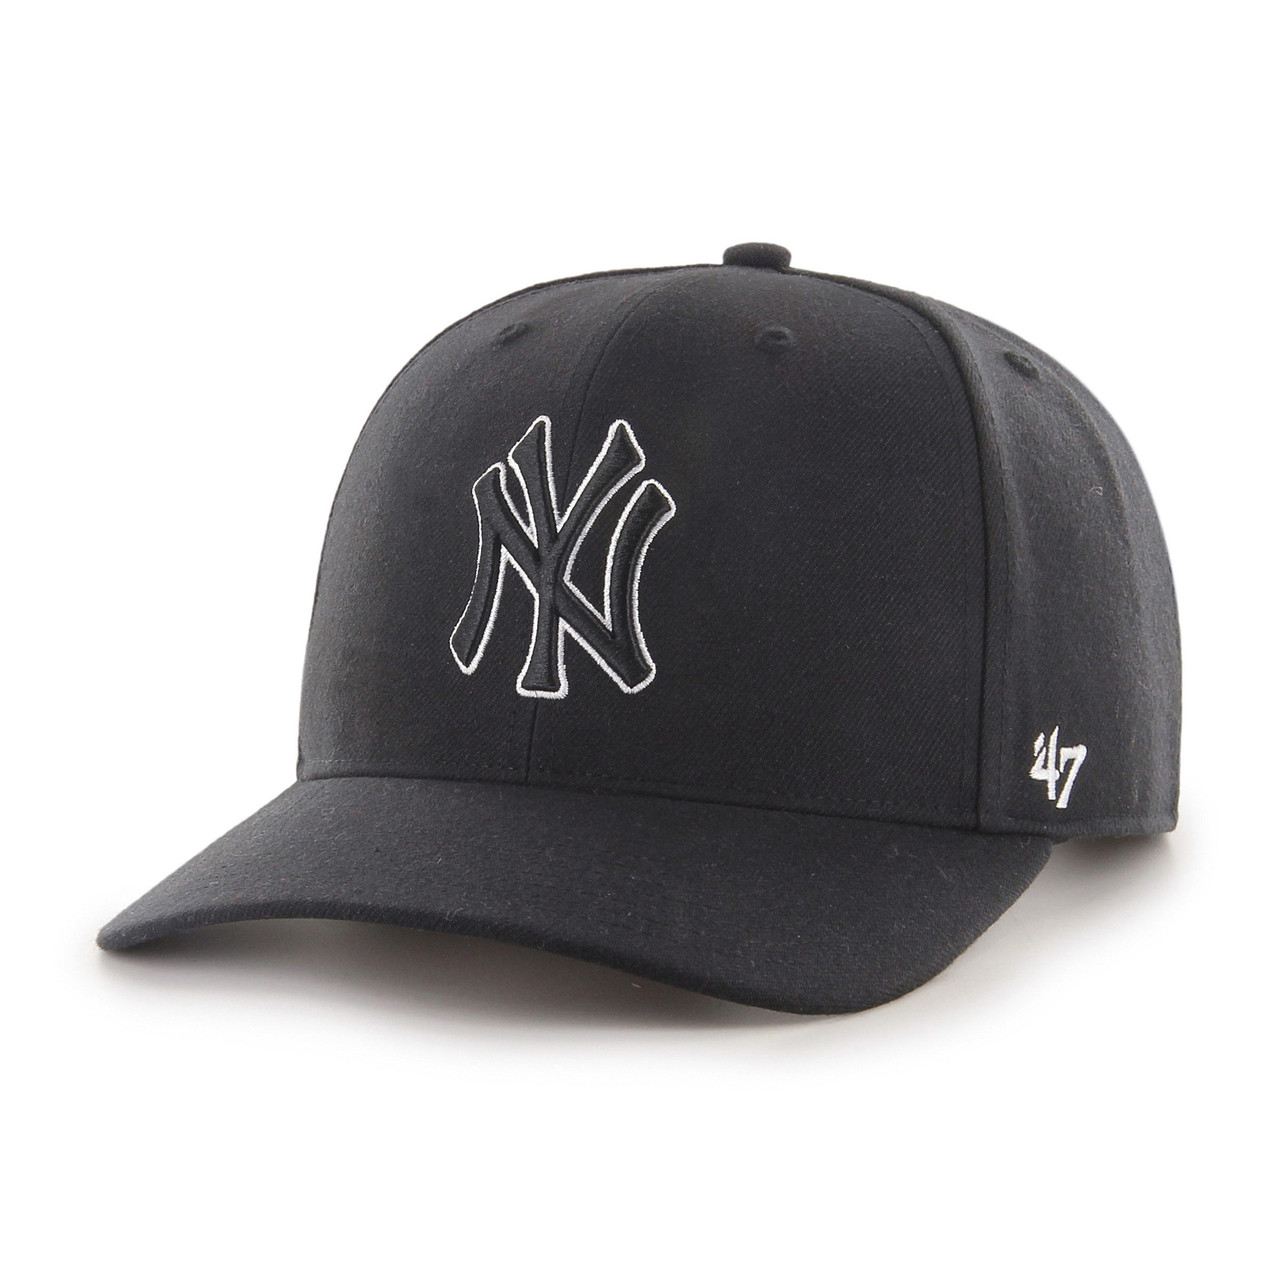 f0b41420 47 New York Yankees Captain Cap Navy | Fancaps